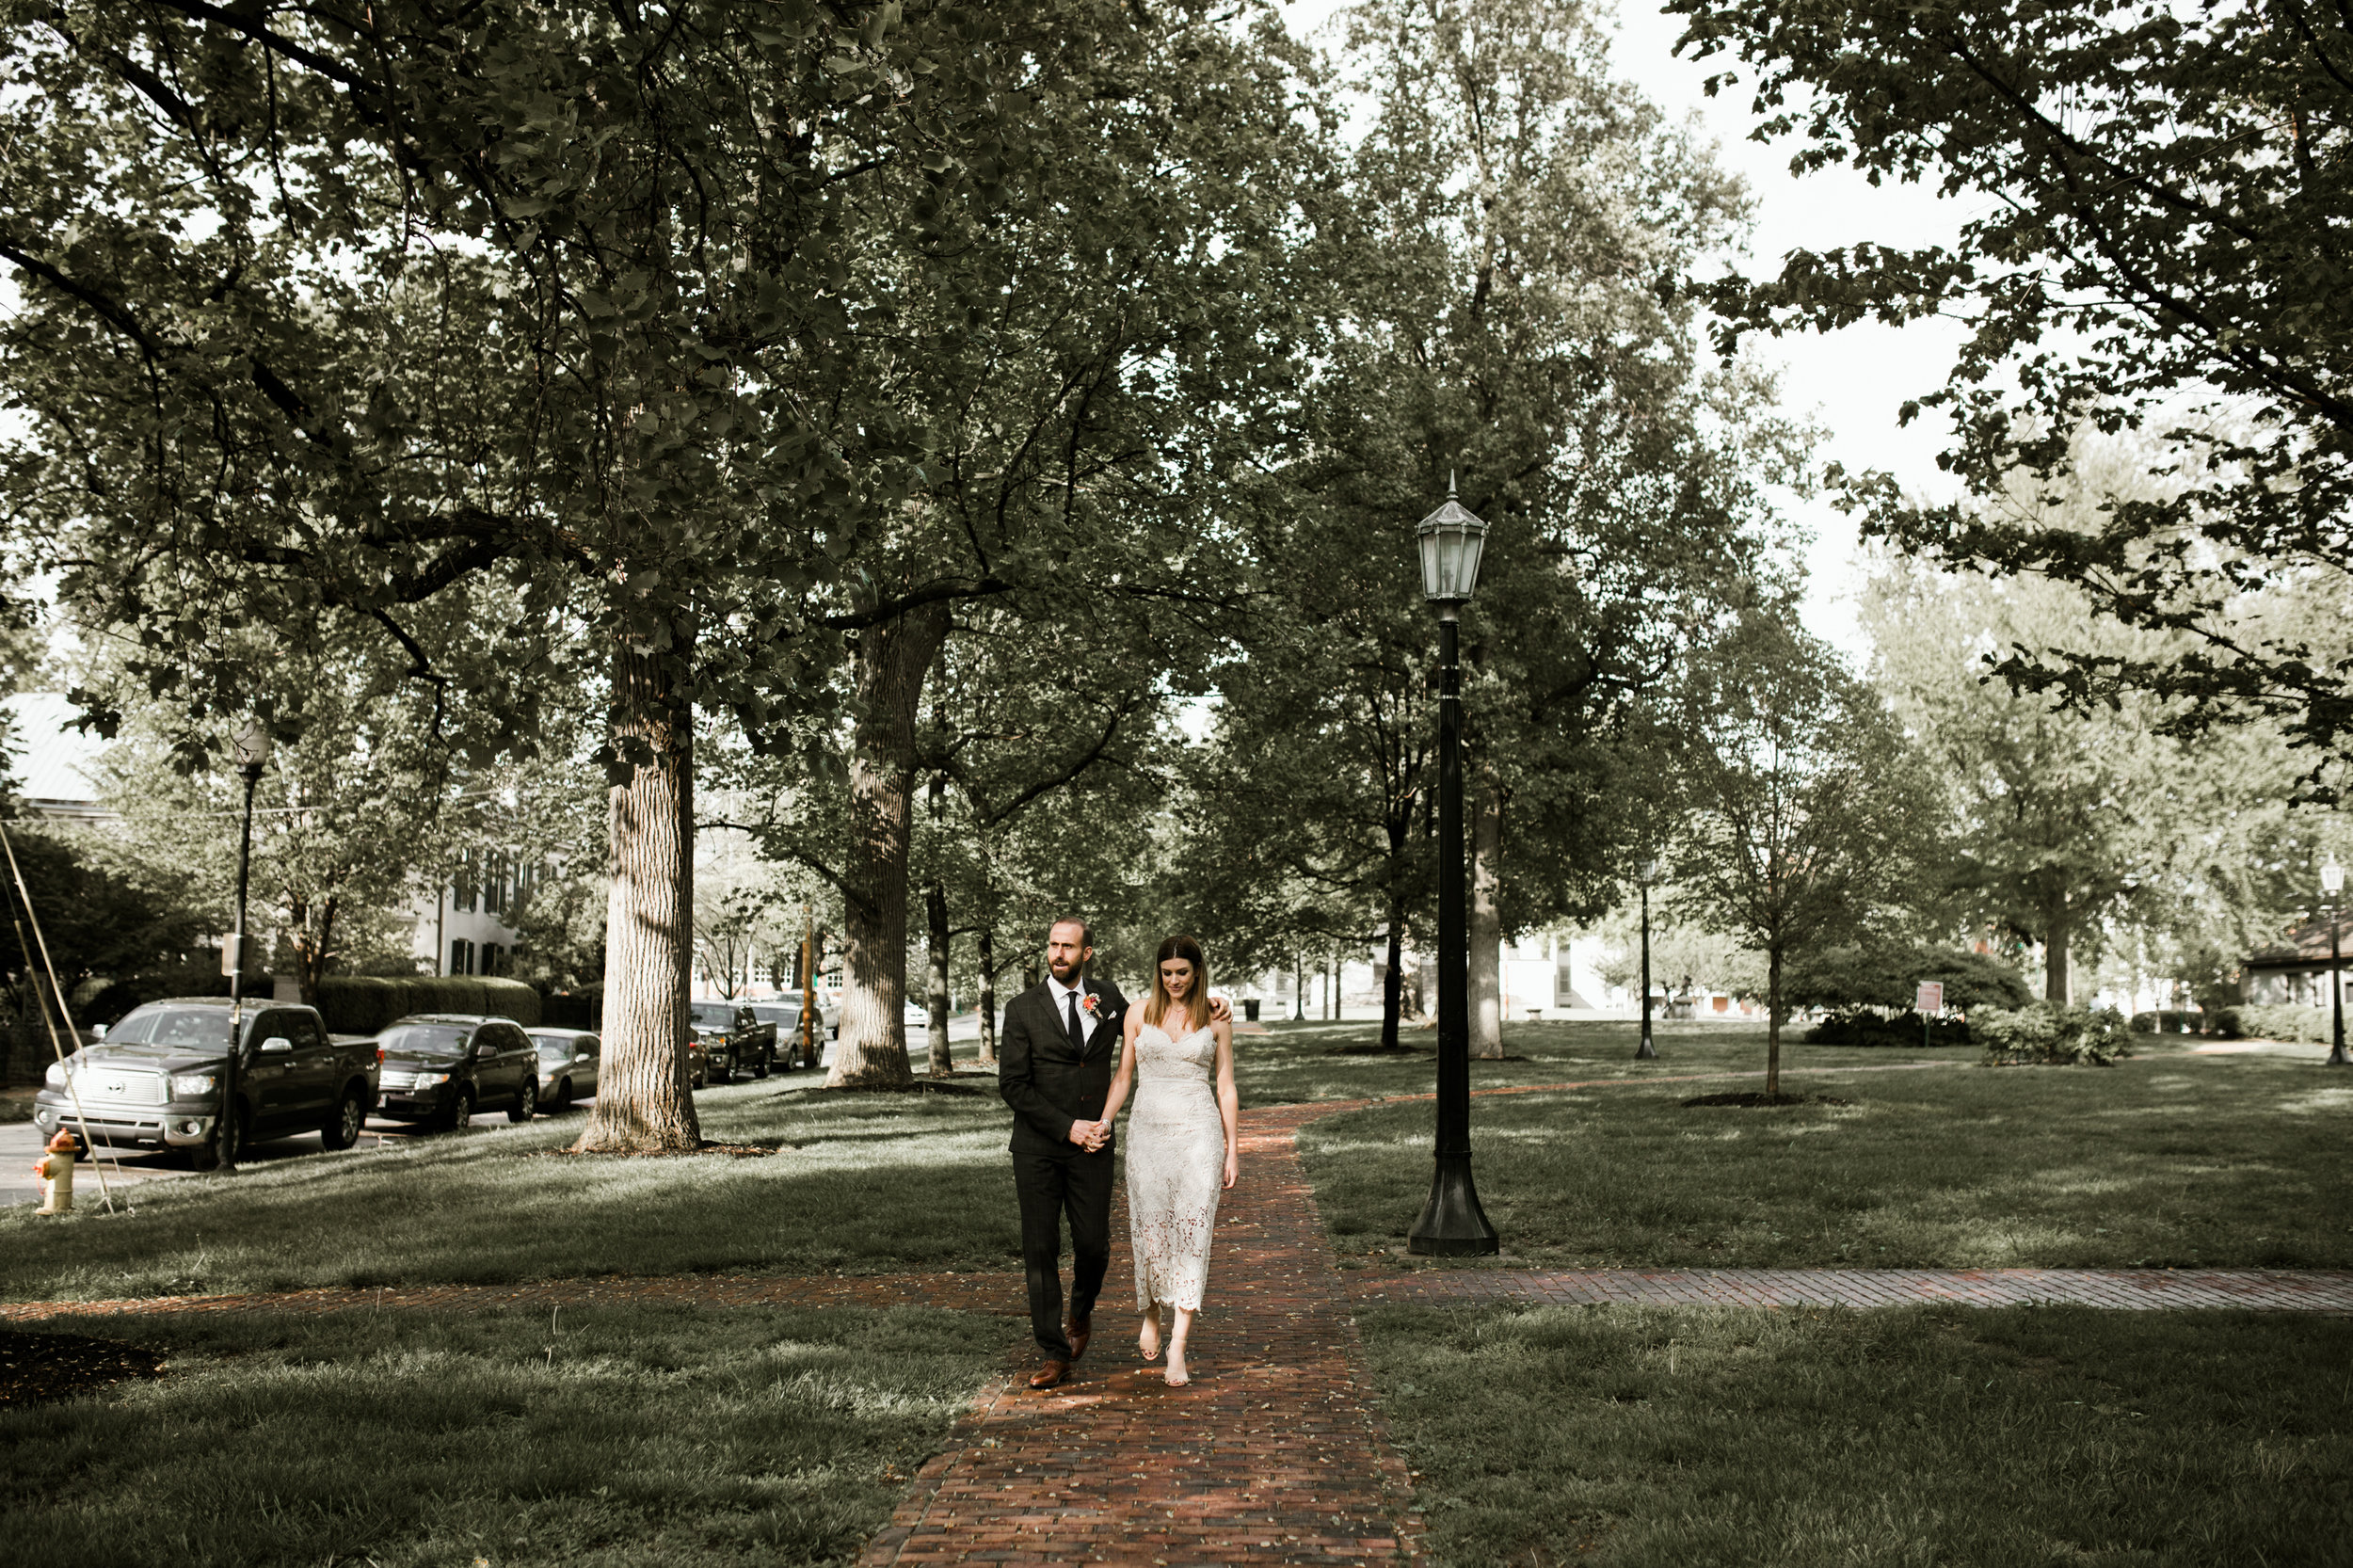 Louisville Courthouse Wedding Louisville Wedding Photographer 2018 Crystal Ludwick Photo Louisville Wedding Photographer Kentucky Wedding Photographer (36 of 76).jpg